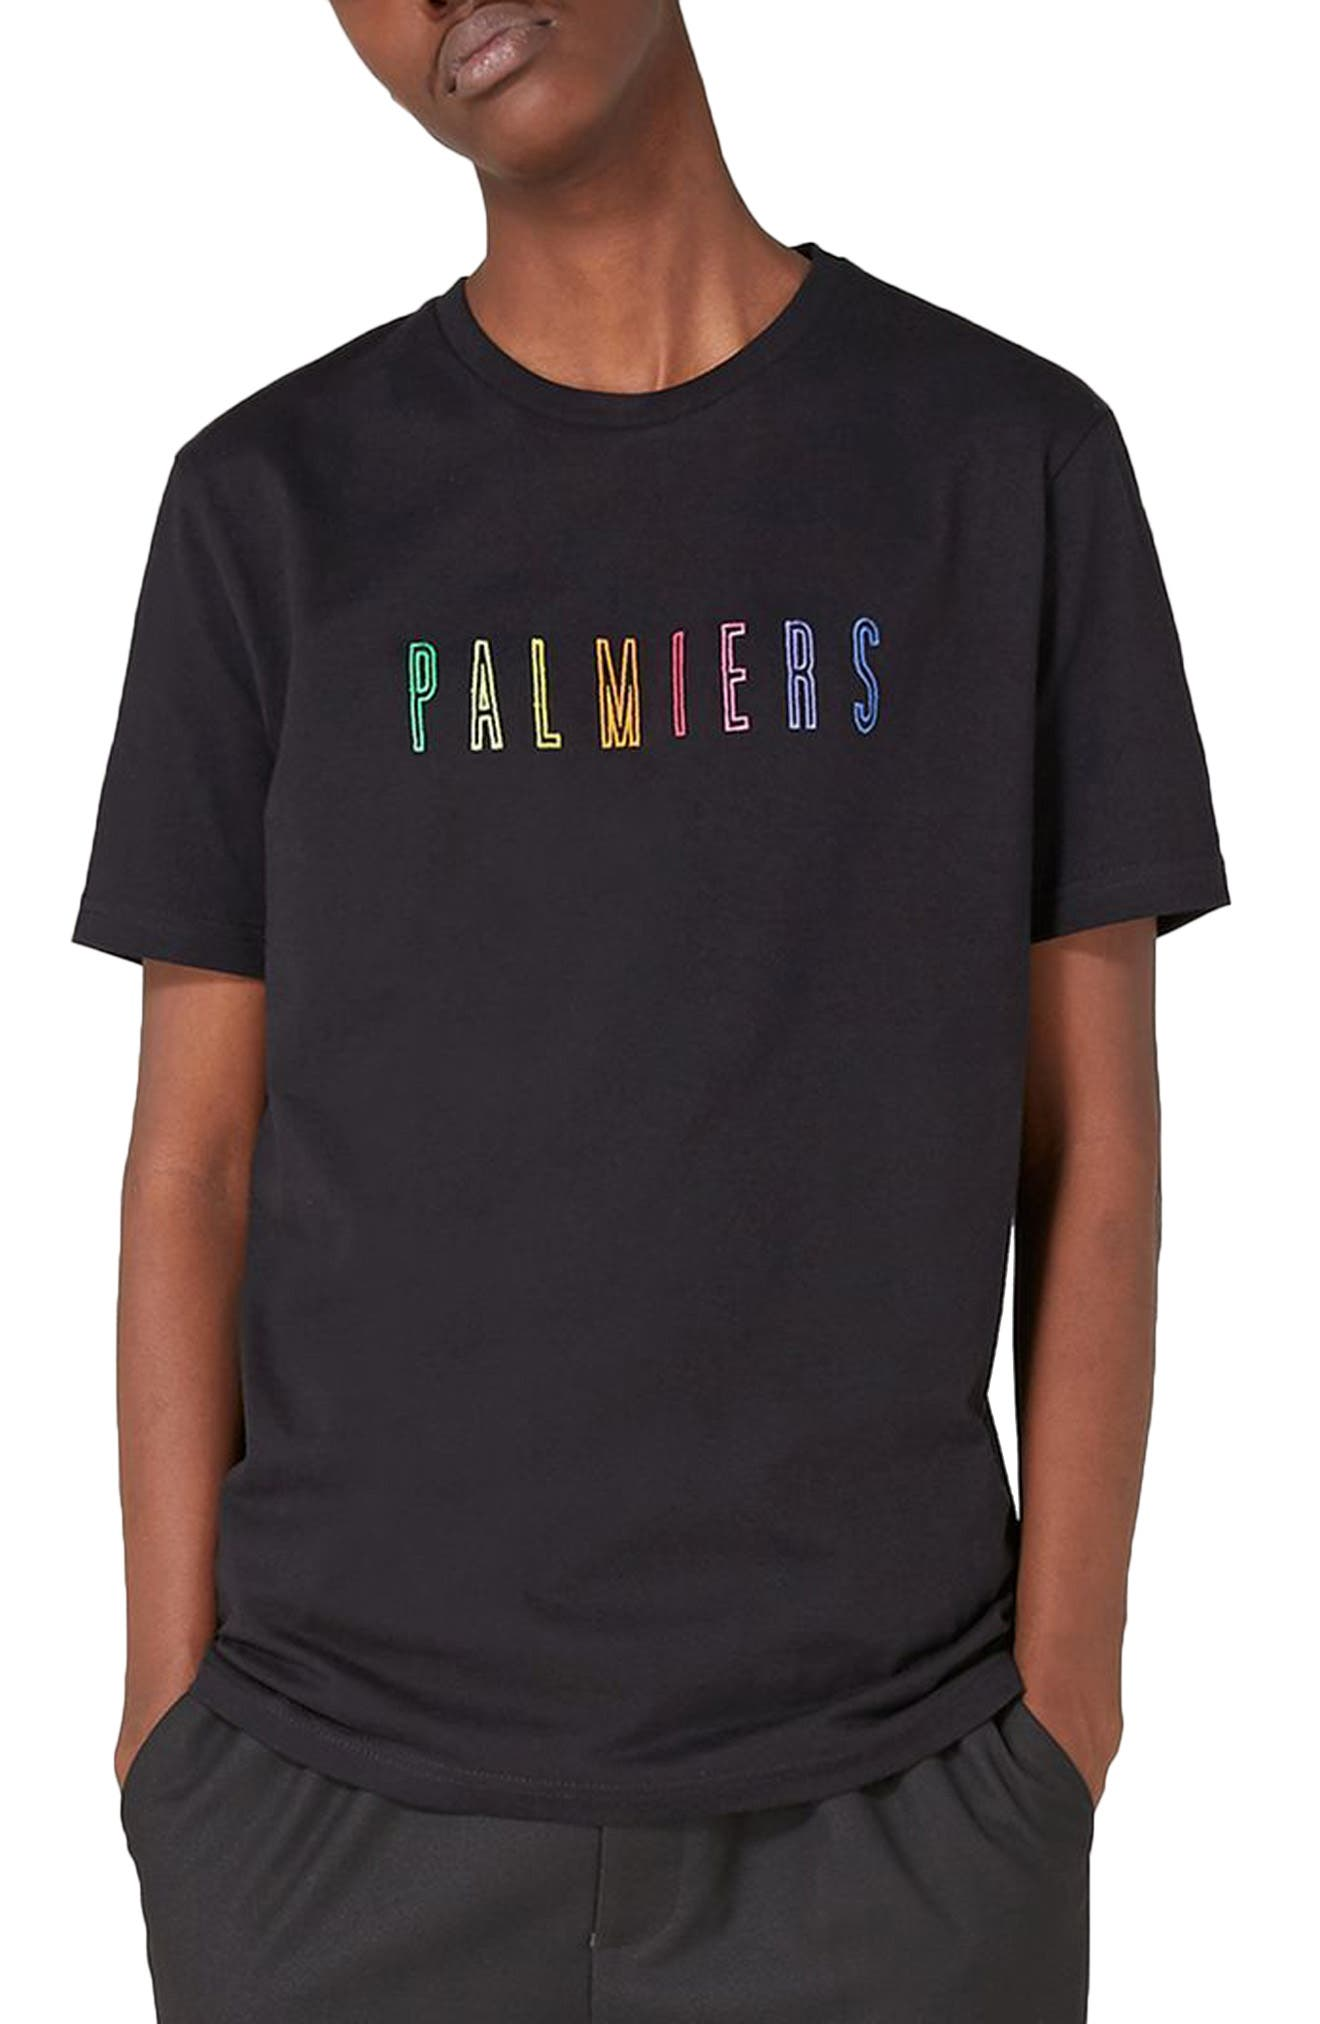 Palmiers Embroidered T-Shirt,                         Main,                         color,